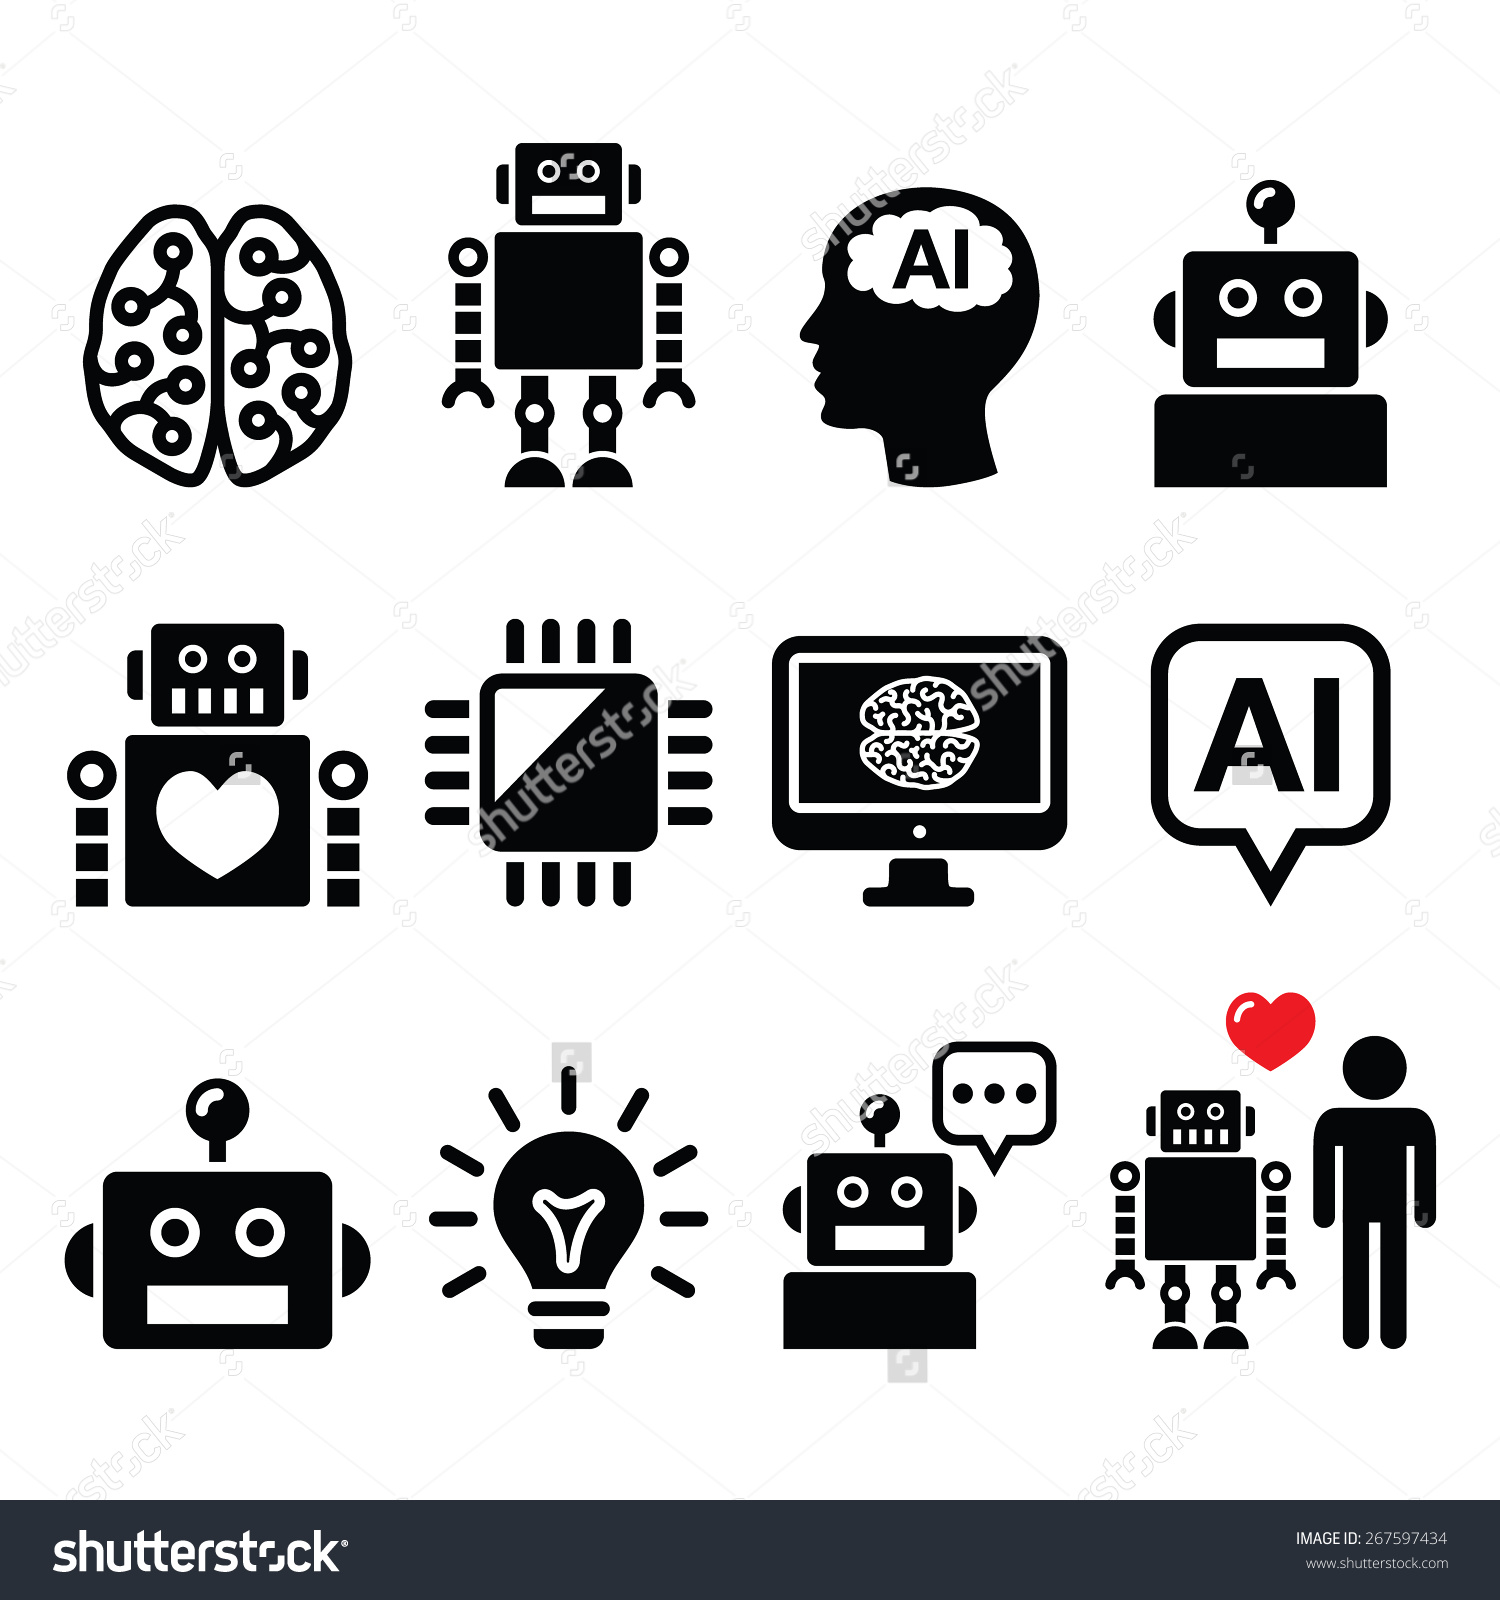 Artificial Intelligence Ai Robot Icons Set Stock Vector 267597434.